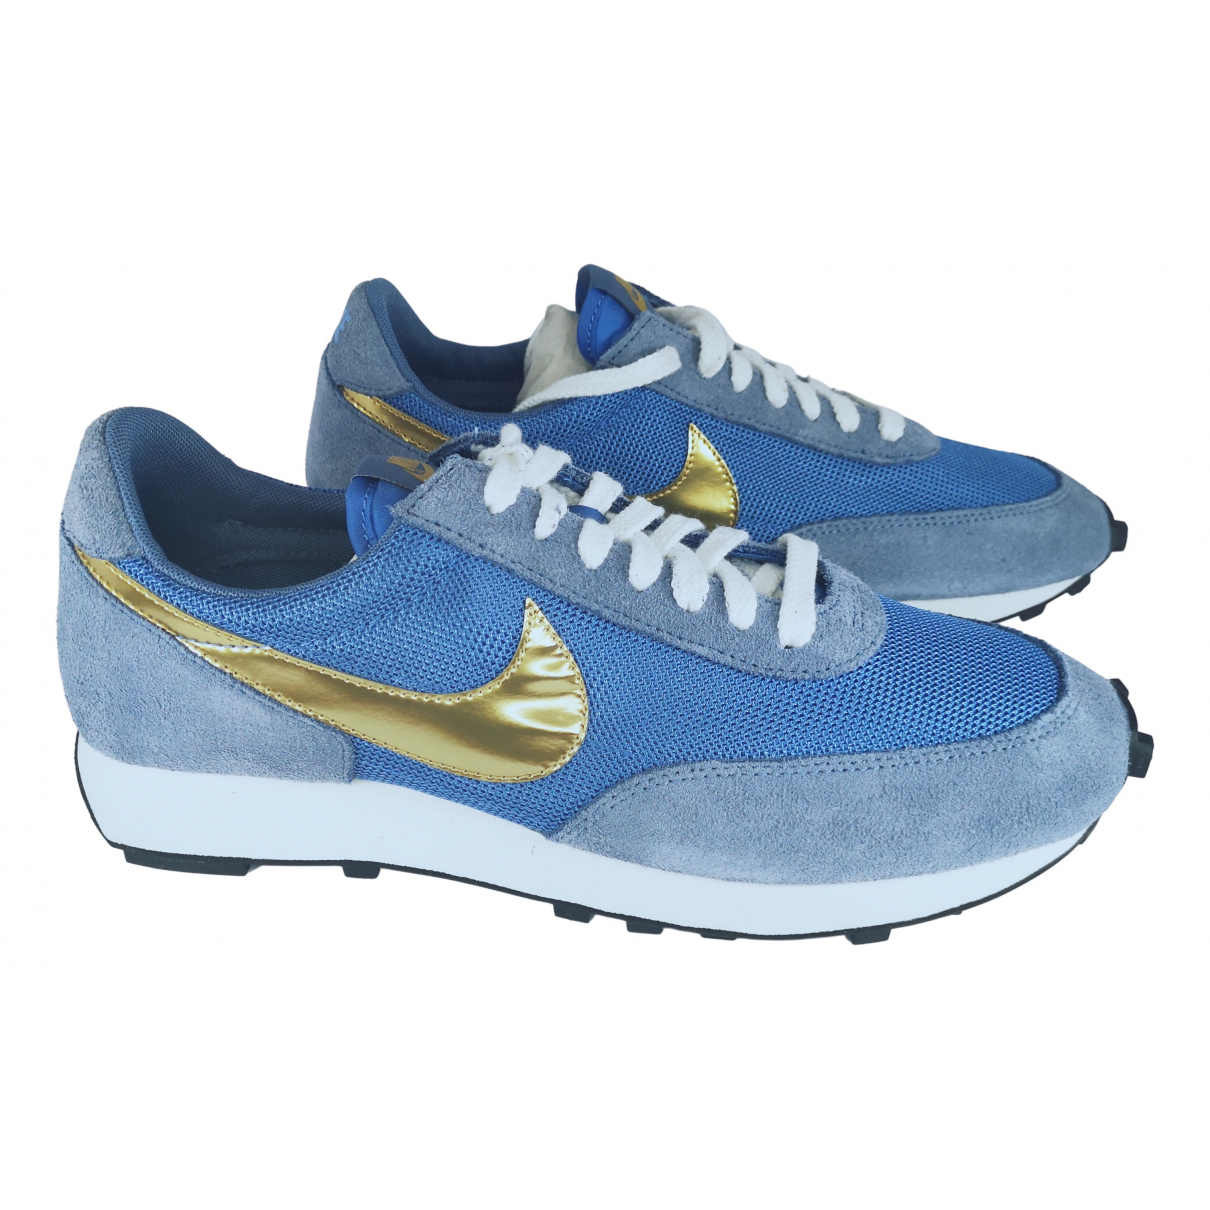 Nike N Blue Cloth Trainers for Men 44.5 EU